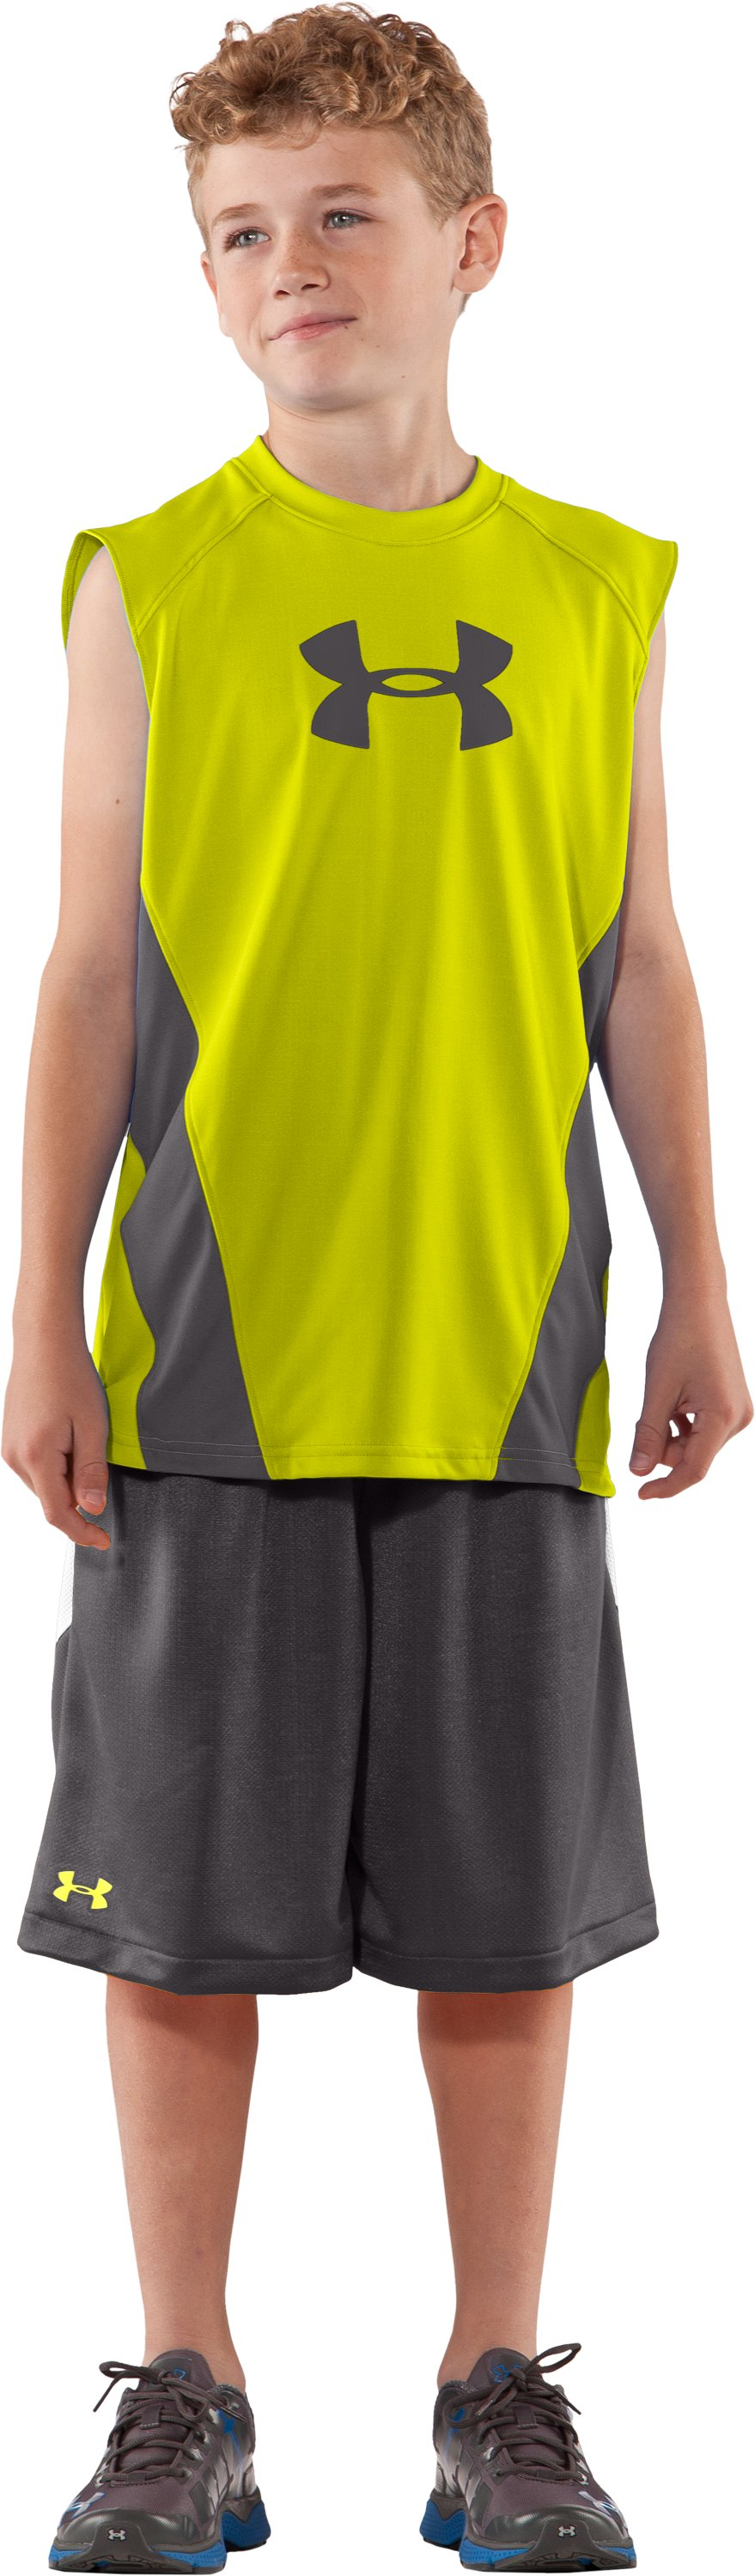 Boys' UA Show Me Sweat Sleeveless T-Shirt, High-Vis Yellow, zoomed image